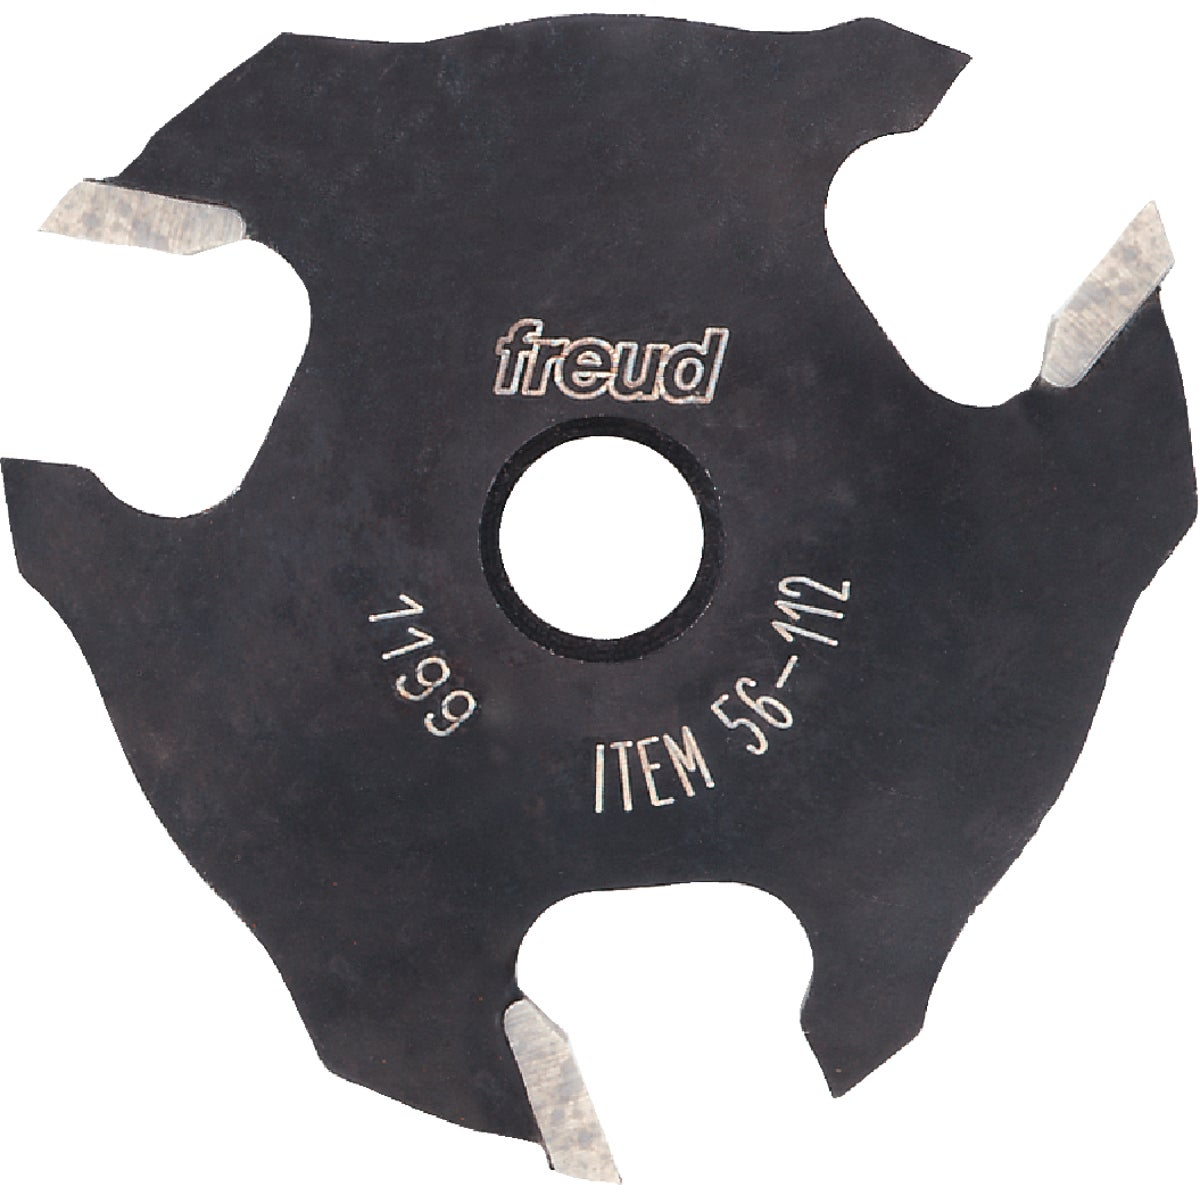 SLOTTING CUTTER BIT - 56-112 by Freud Inc